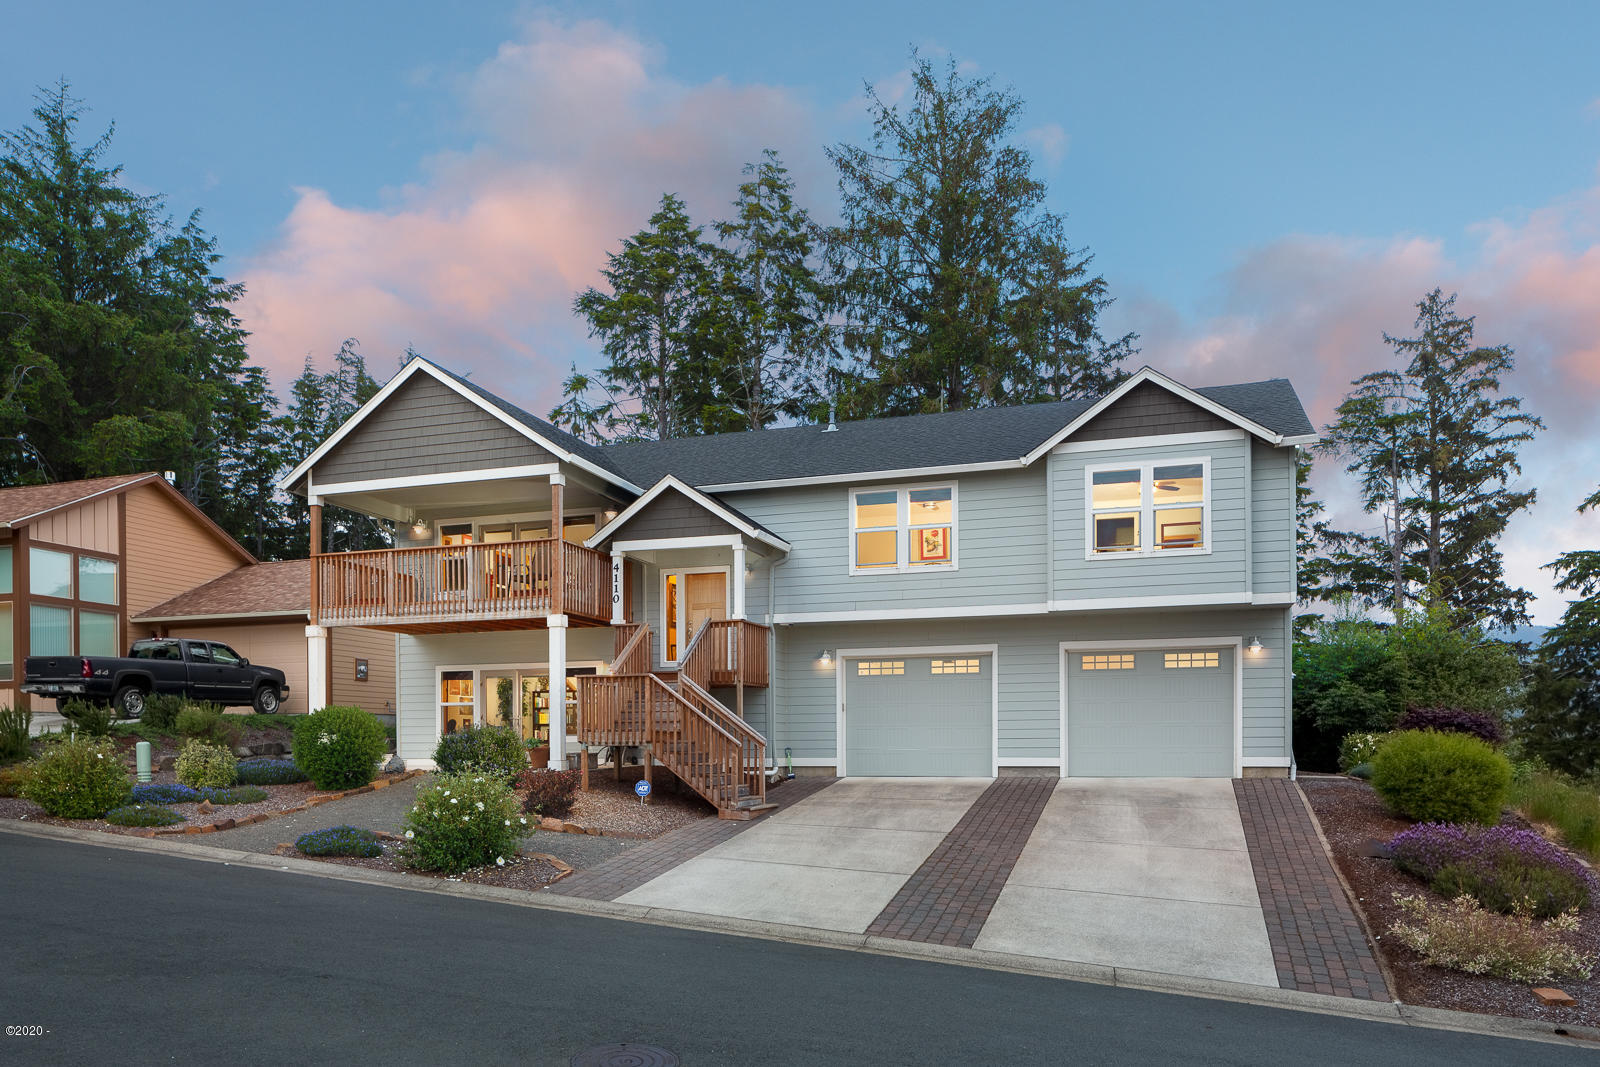 4110 SE Lee Ave, Lincoln City, OR 97367 - Front of home